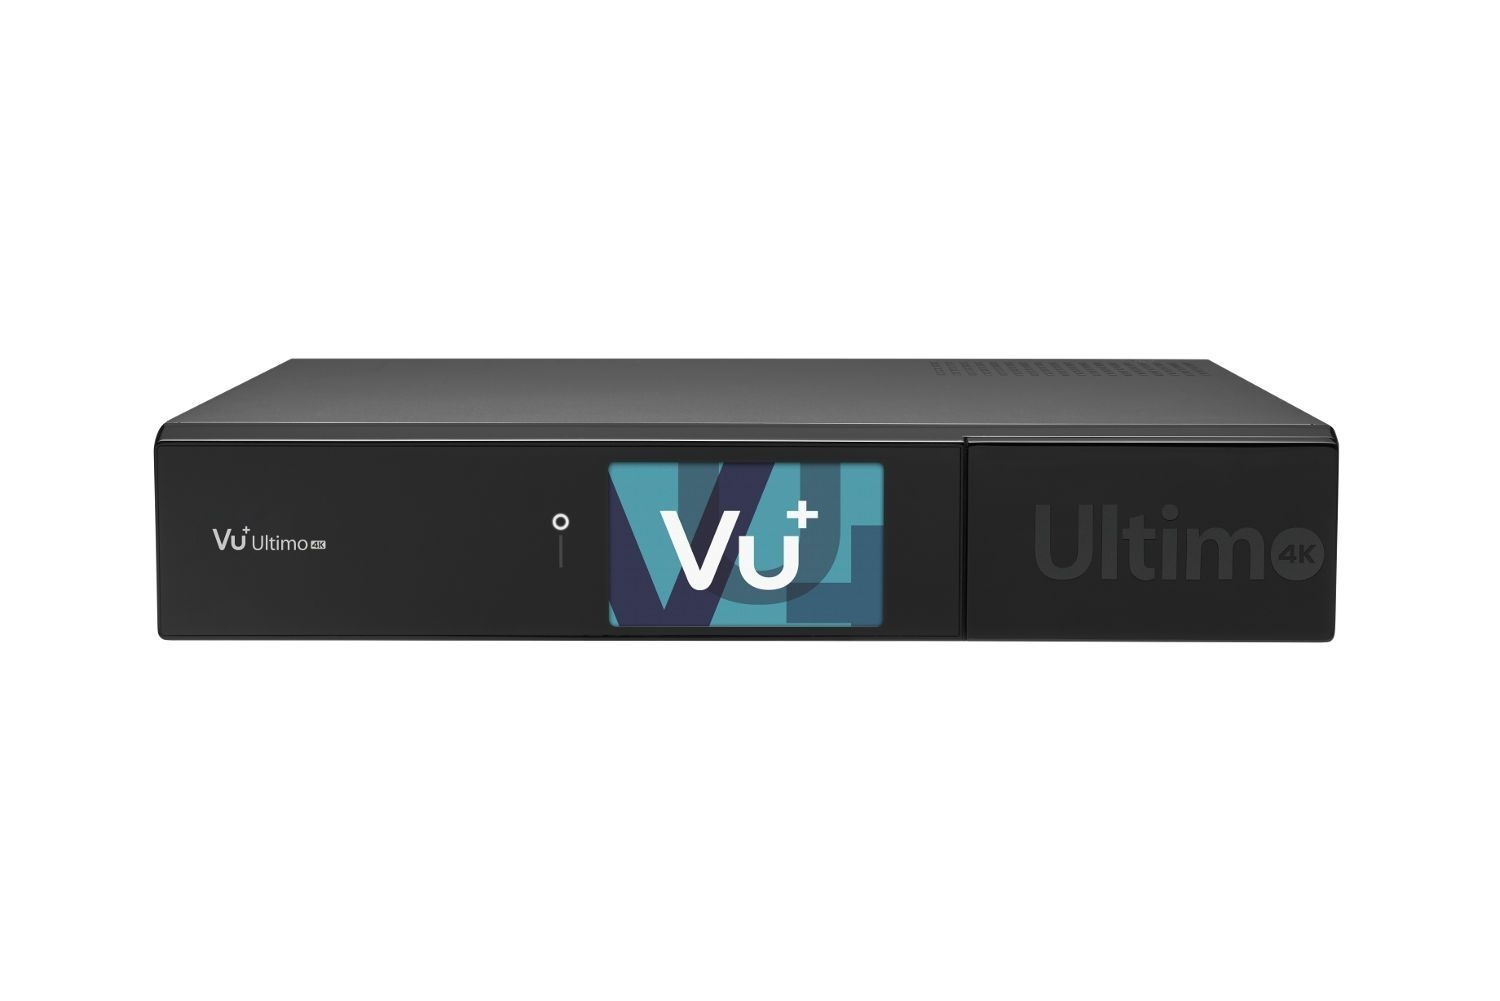 VU+ Ultimo 4K 2x DVB-C FBC / 1x DVB-S2 Dual Tuner 8 TB HDD Linux Receiver UHD 2160p